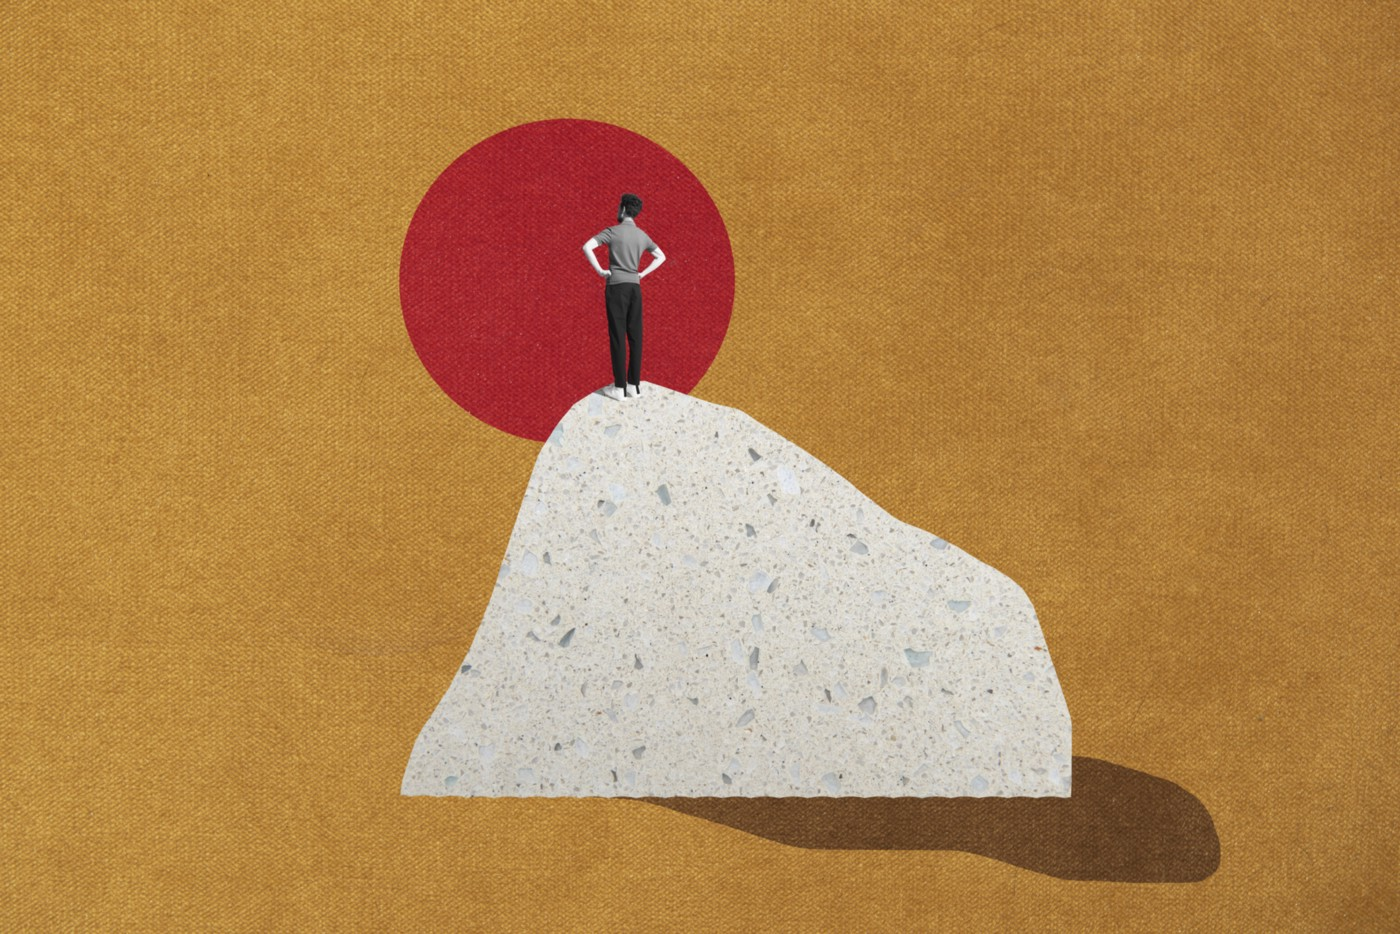 Graphic of a person standing on top of a hill/mountain overlooking a red sun.